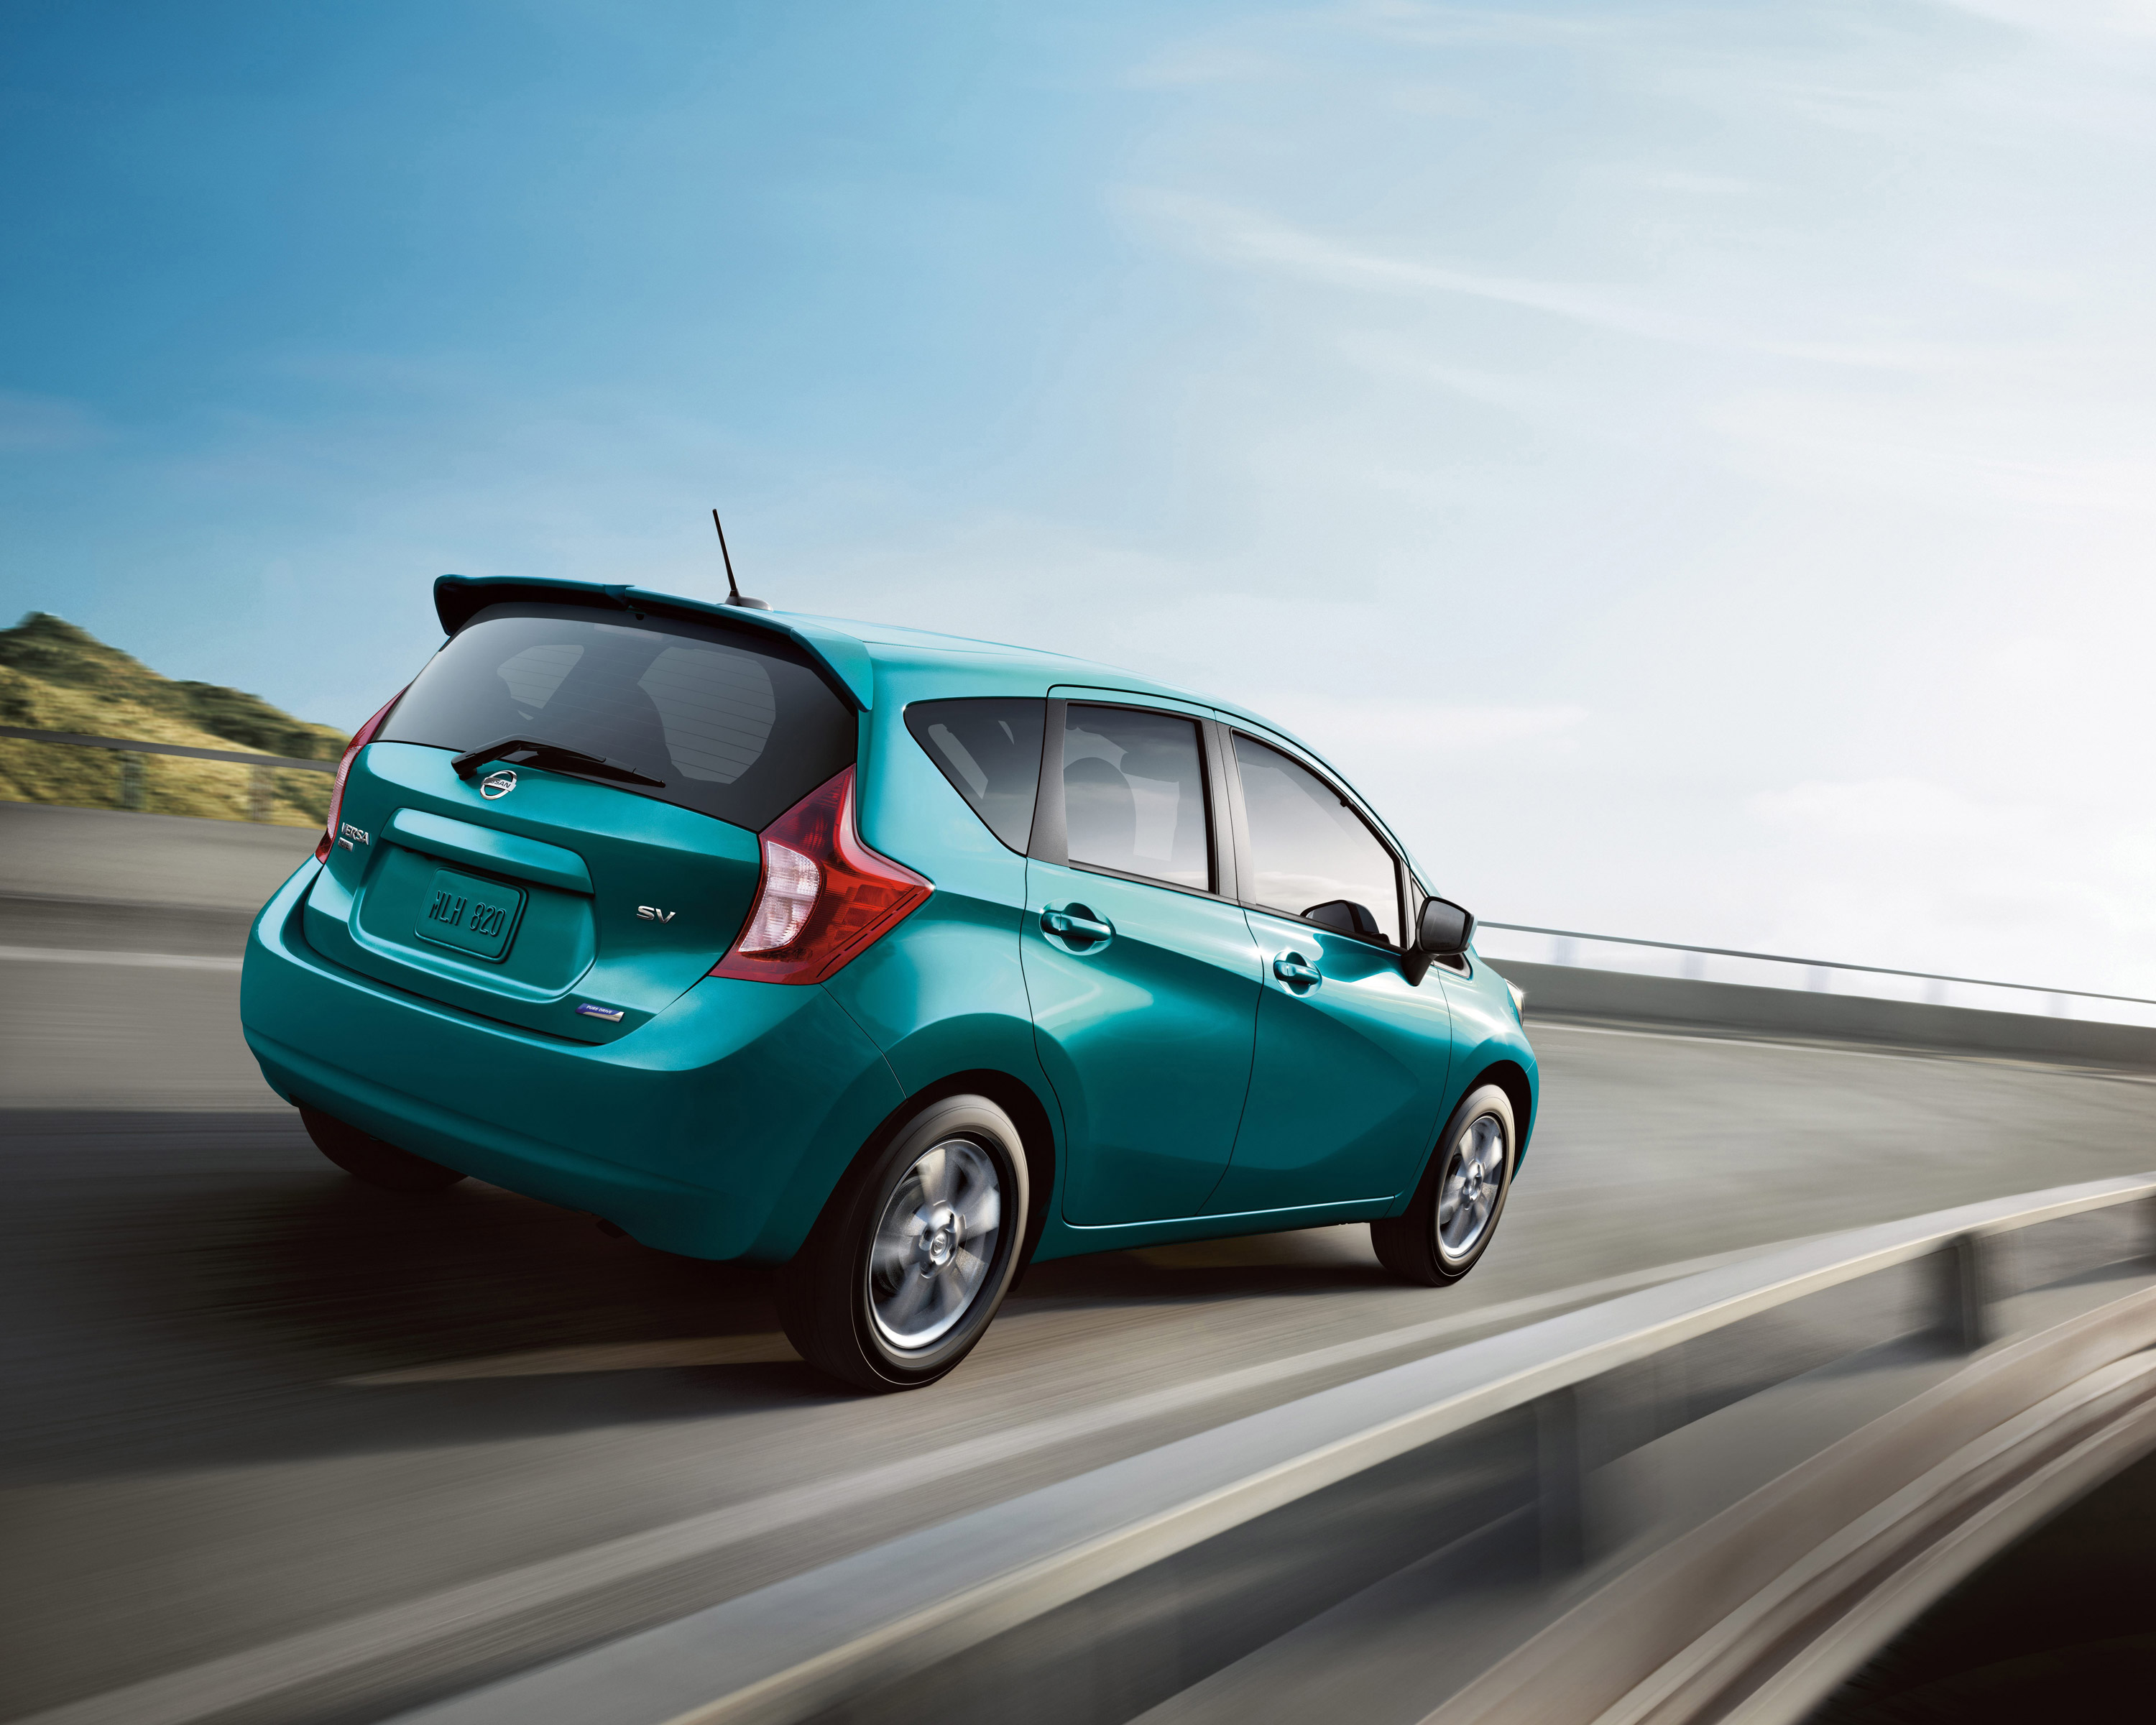 com specs information versa auto pictures nissan database and